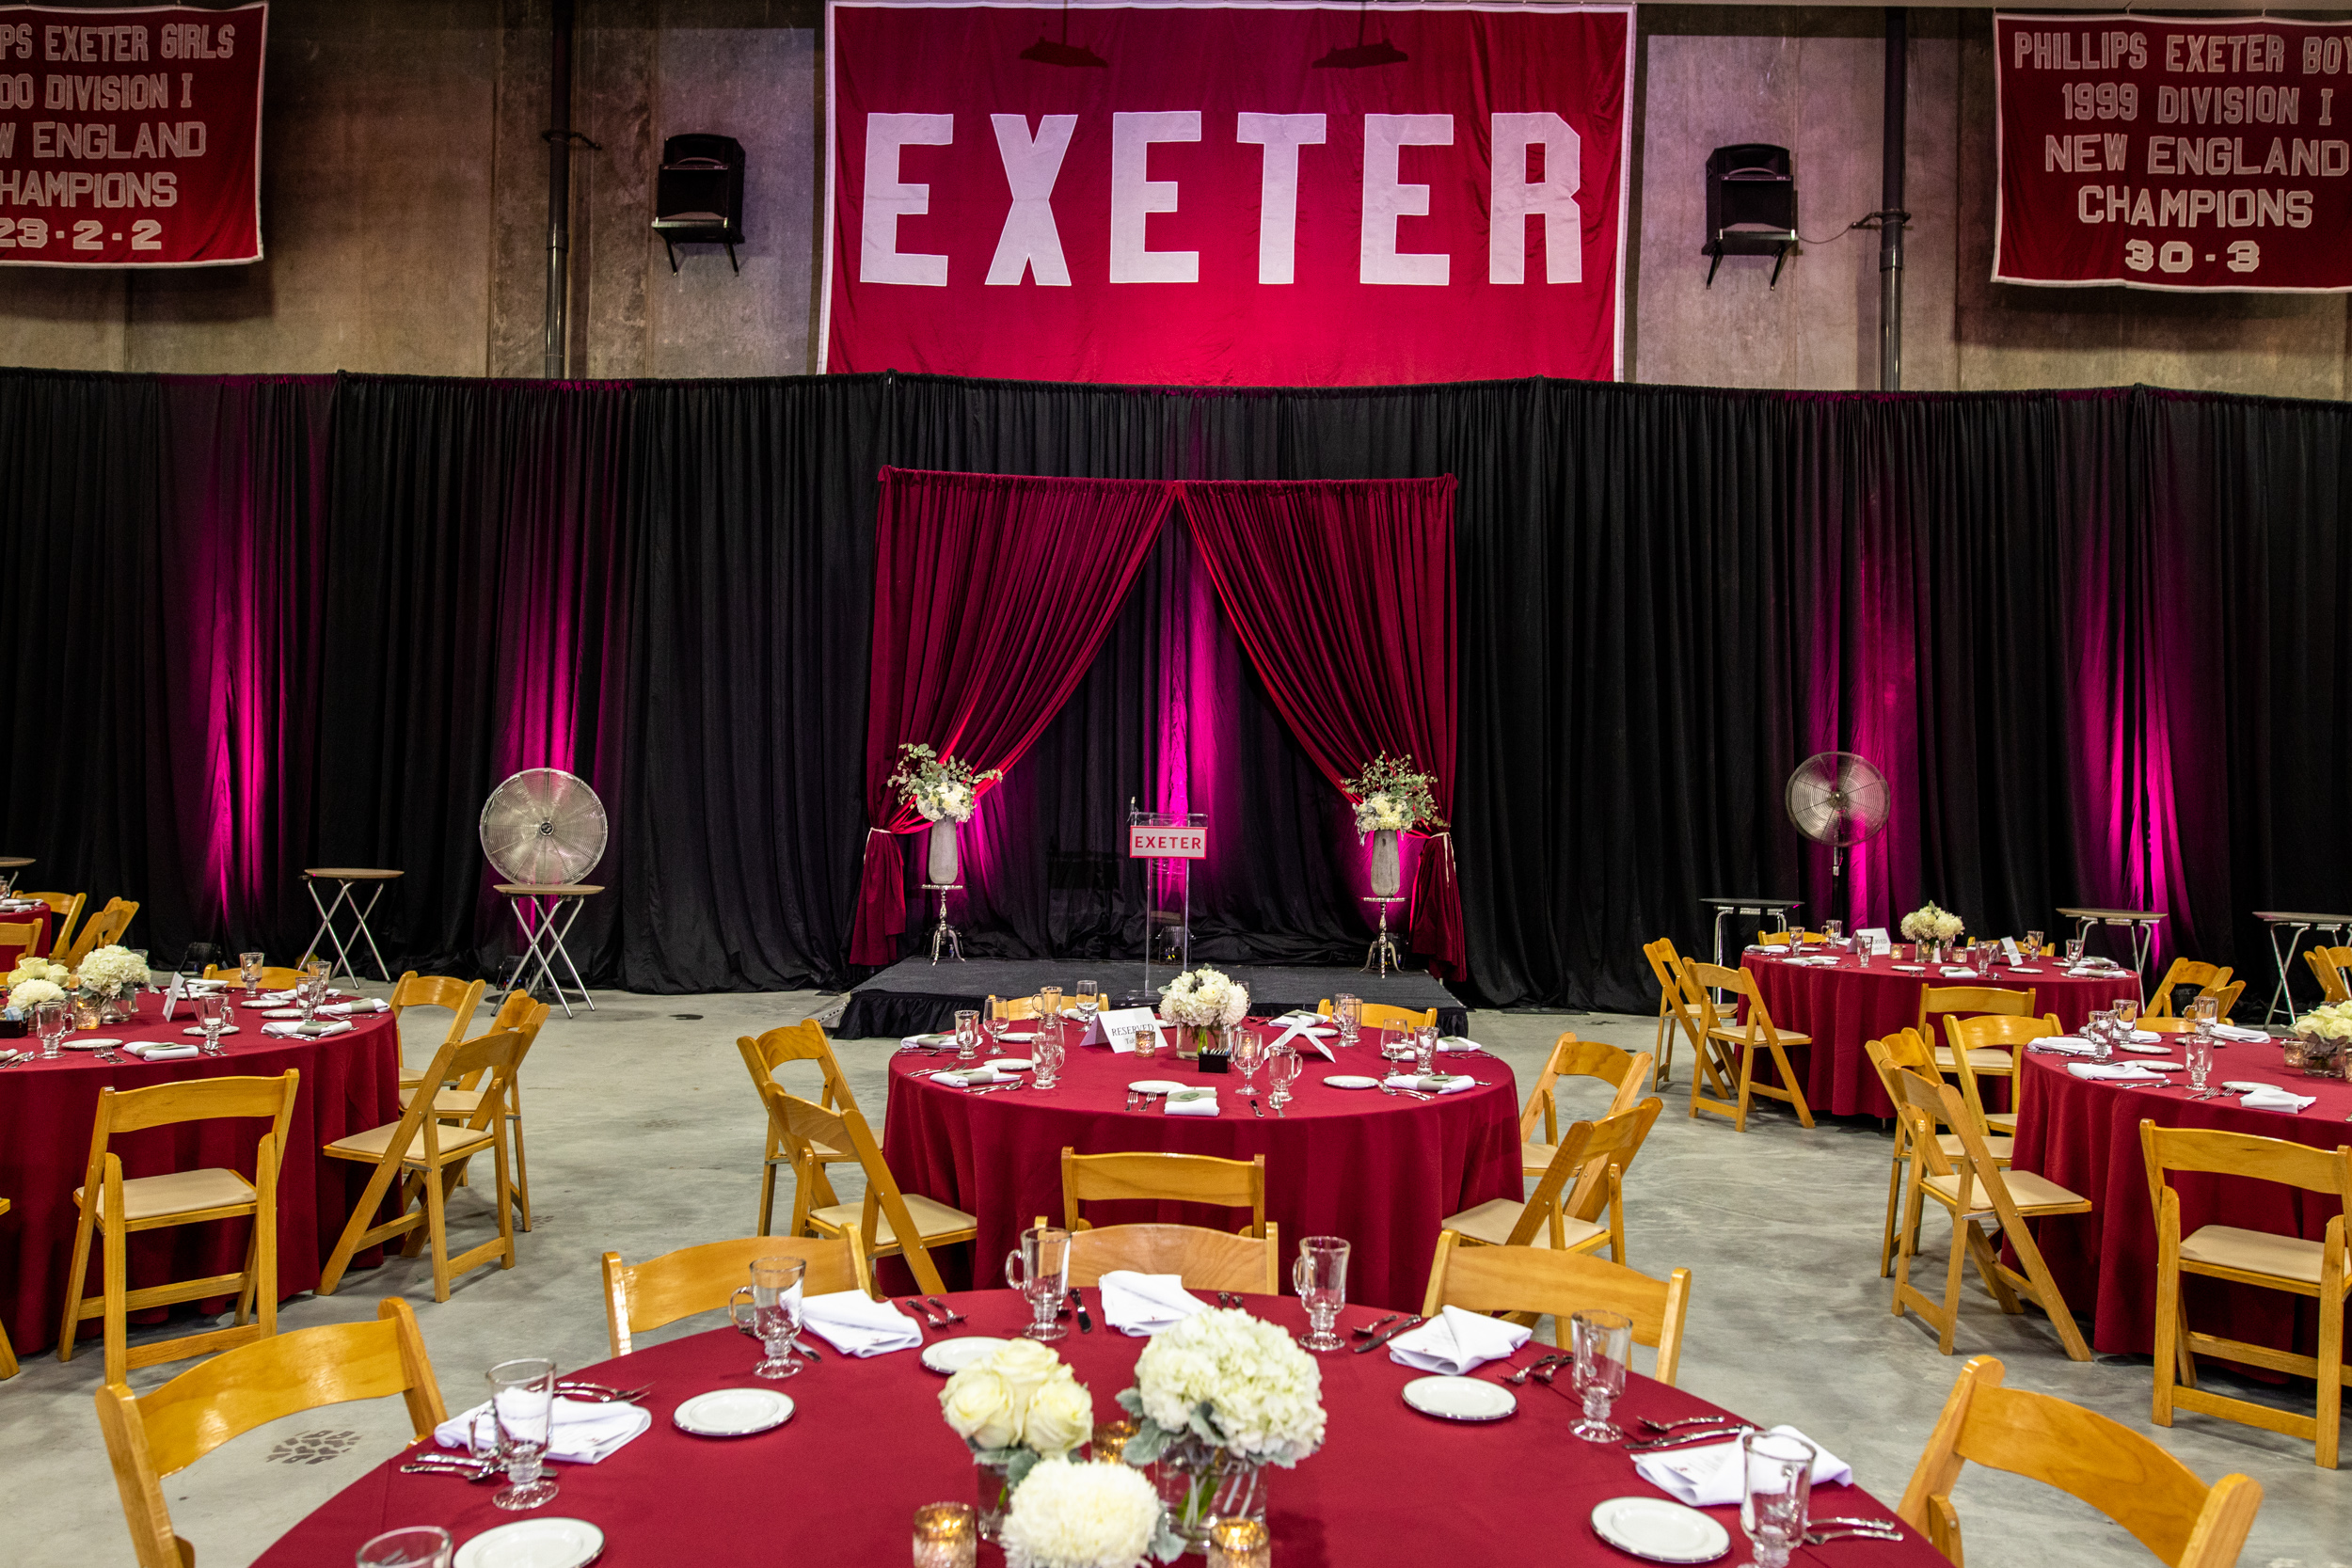 Corporate_Production_Phillips_Exeter_Academy_Pizzuti_Awards_Dinner_lighting_floral_stage